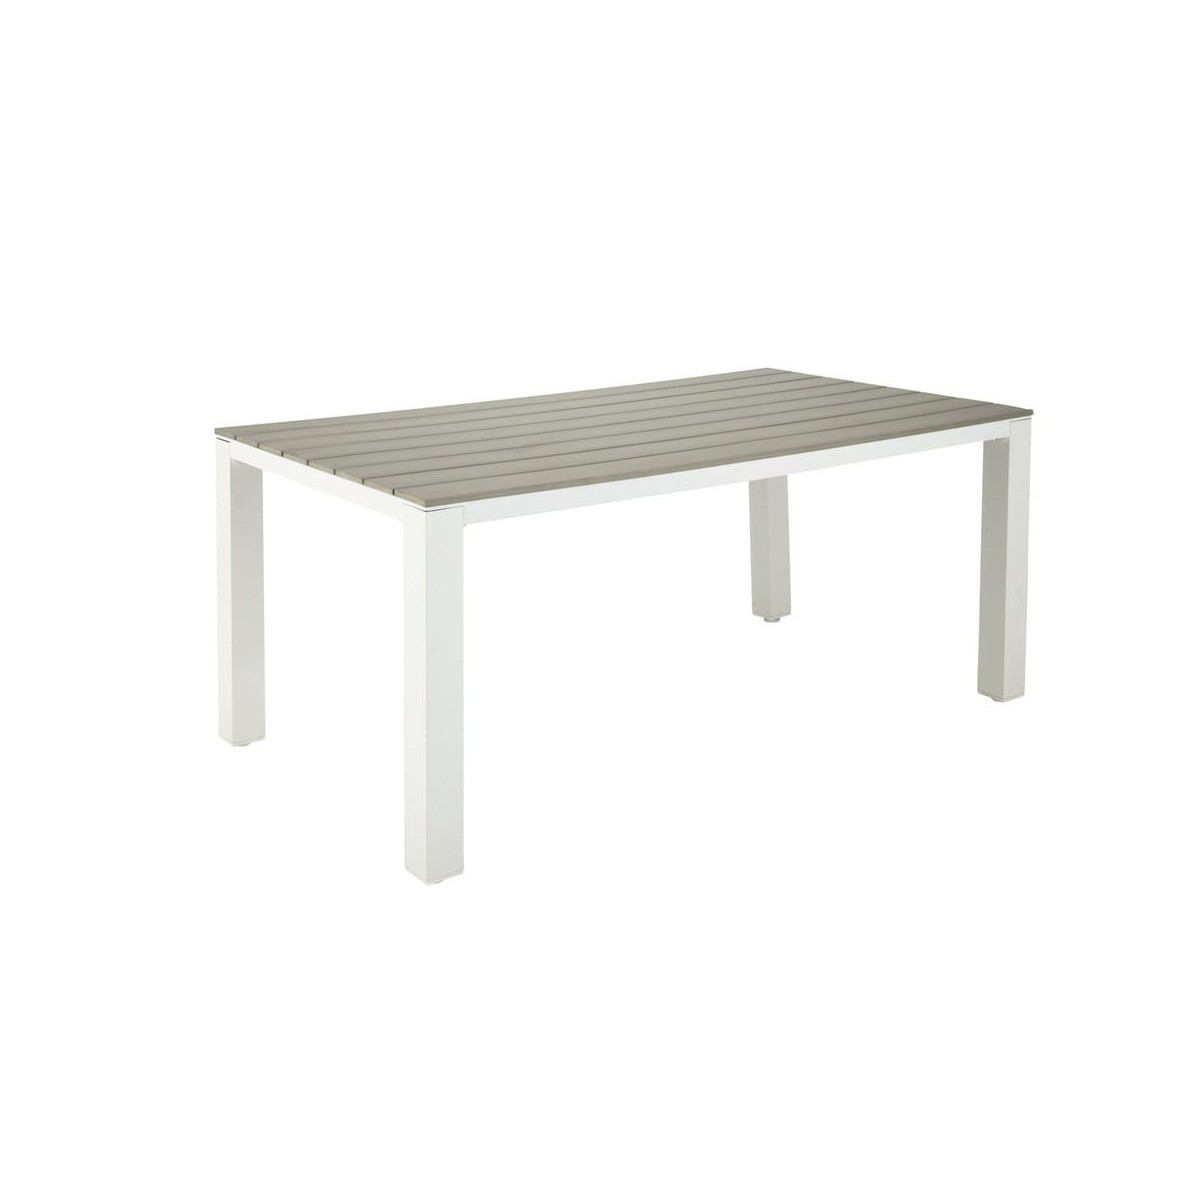 Beautiful Table De Jardin En Bois Et Aluminium Contemporary - House ...